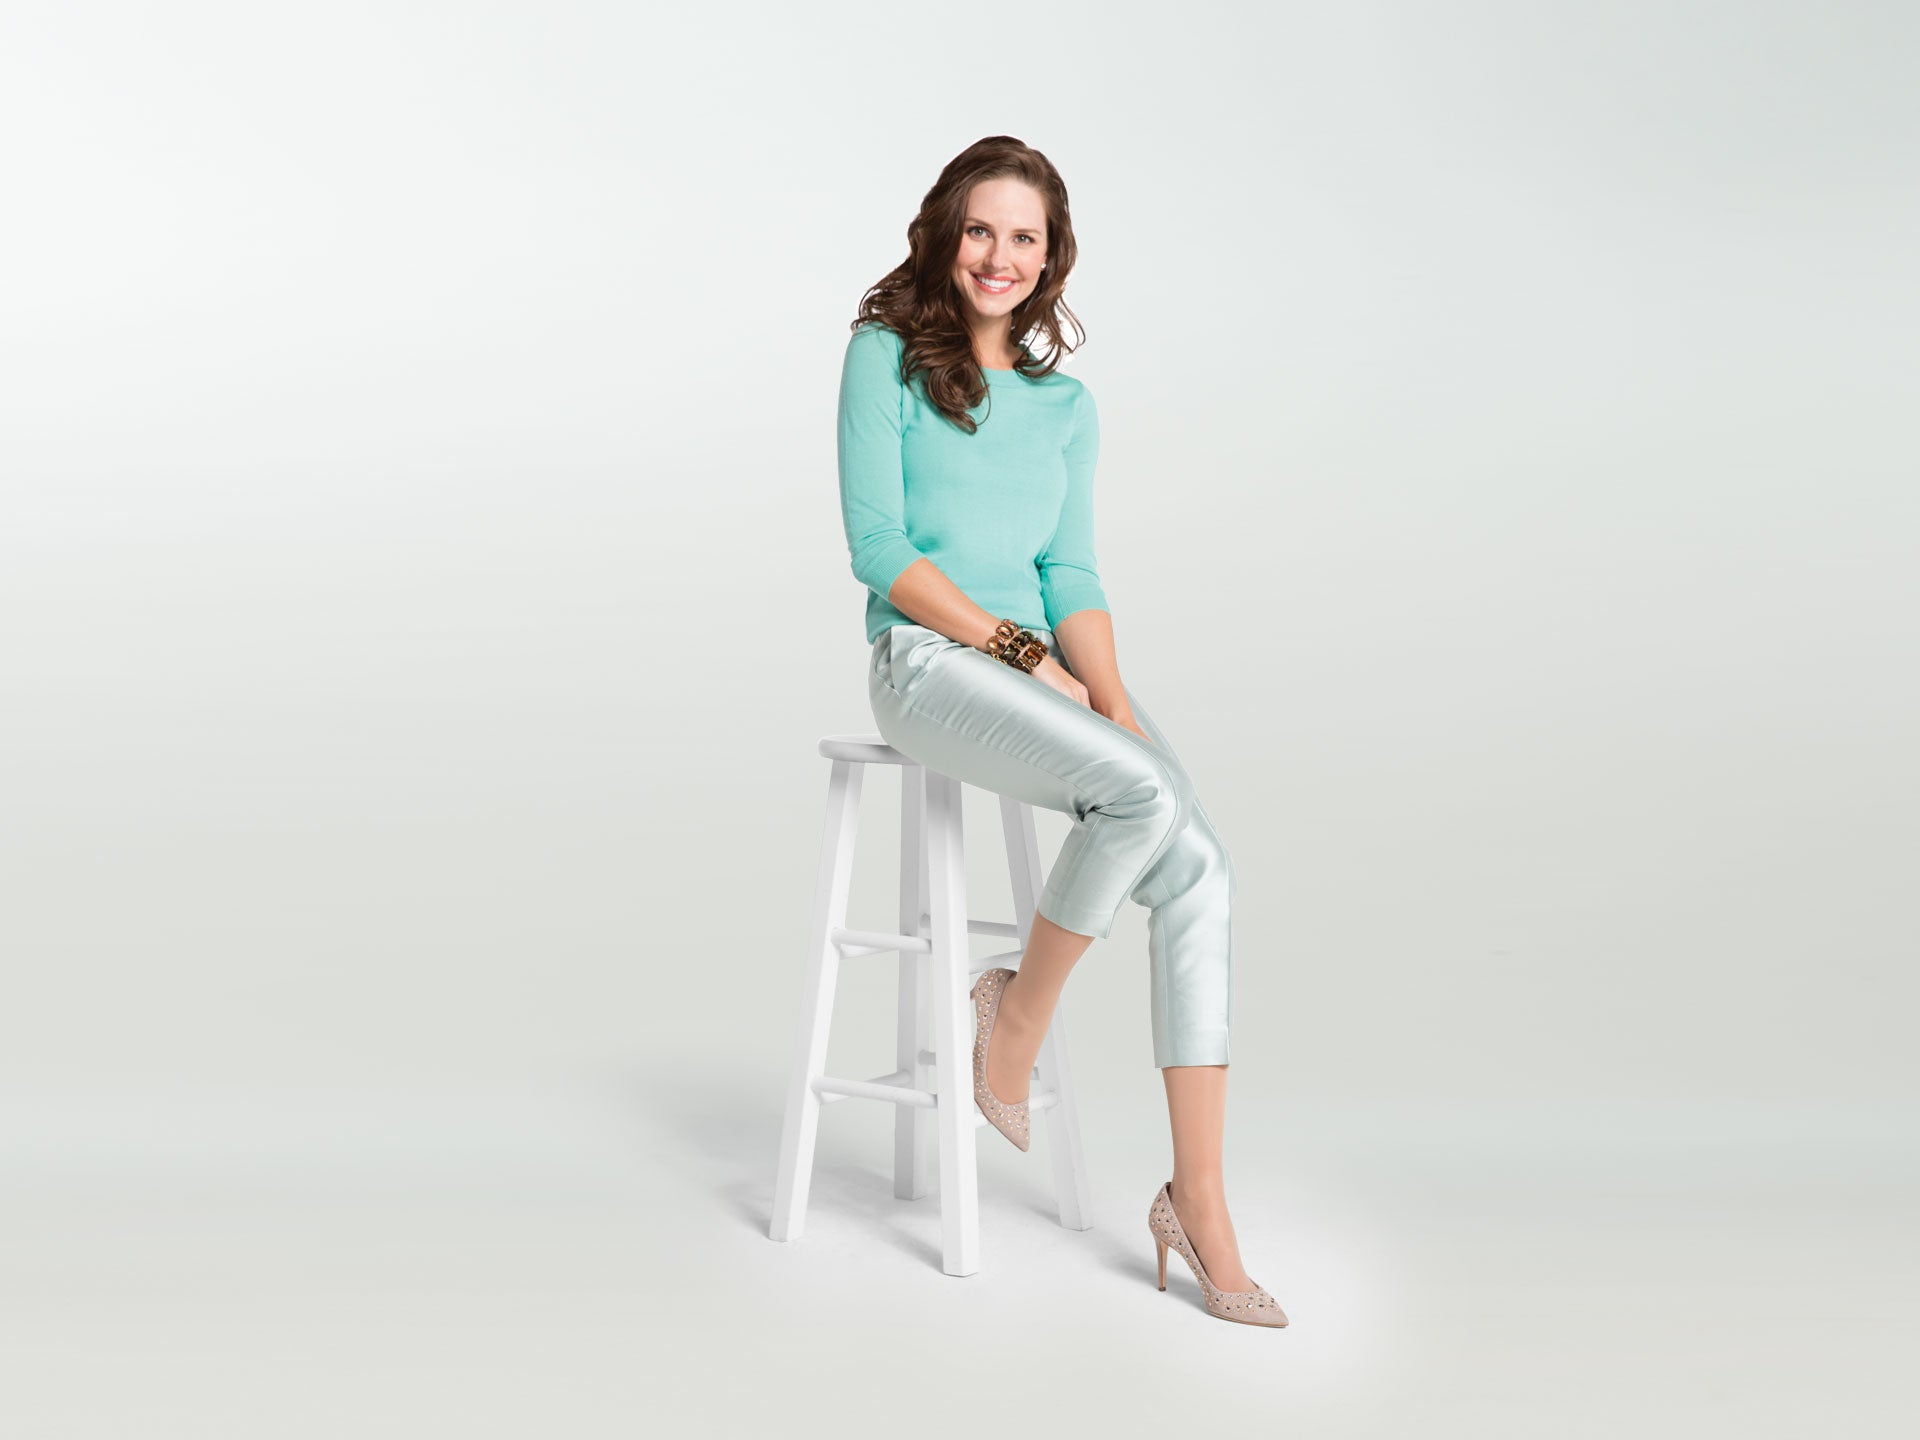 Sheer compression stockings and fabrics for women